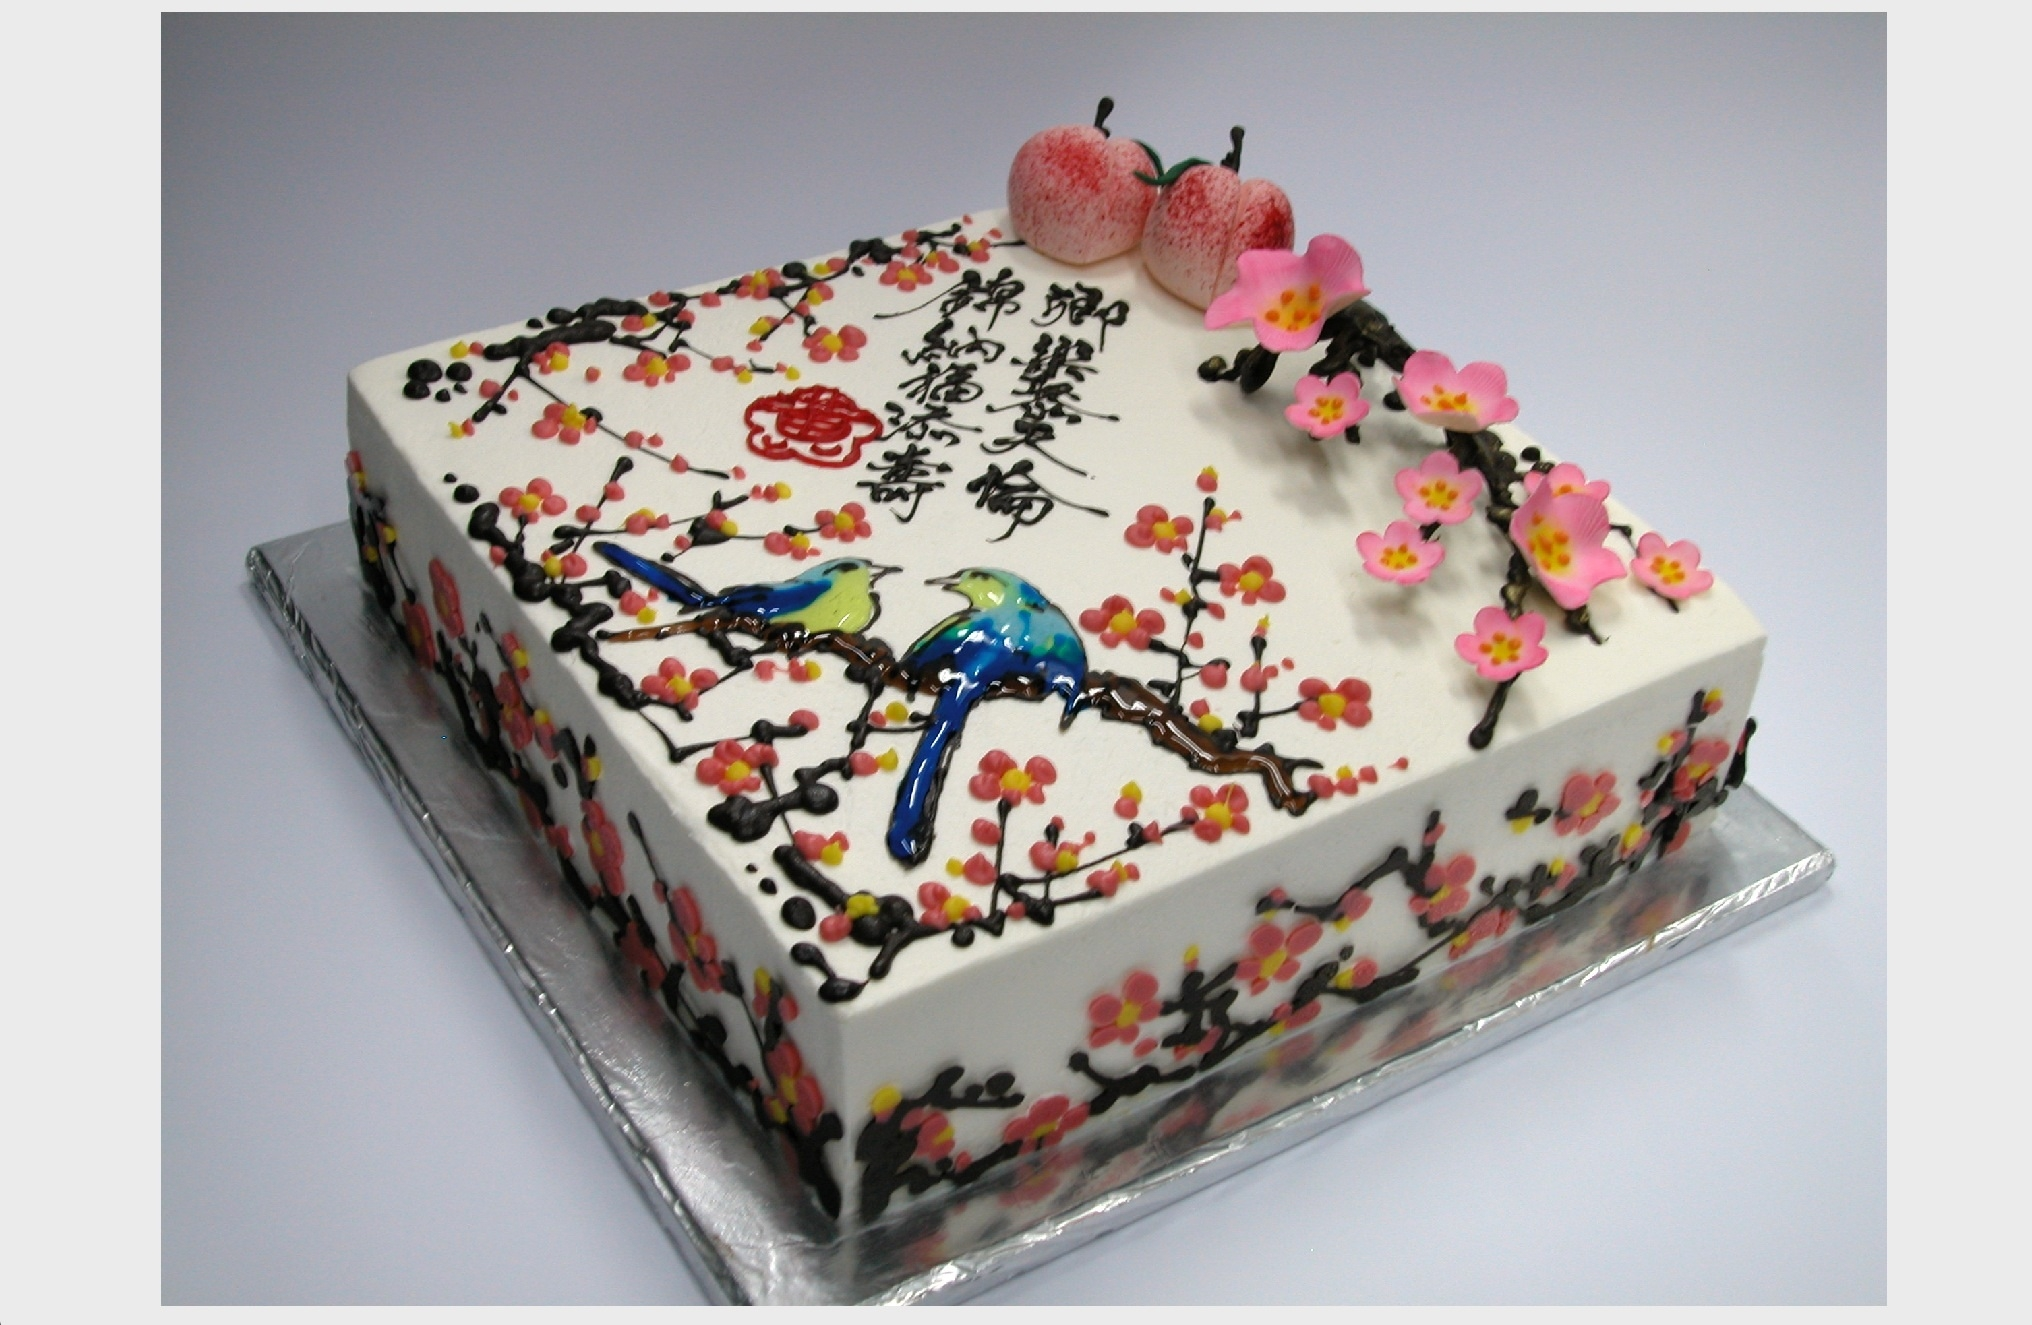 Chinese Design Oriental Style Birthday Cake With Cherry Blossom Drawings Chocolate Longevity Name Plaque Lattice Decoration